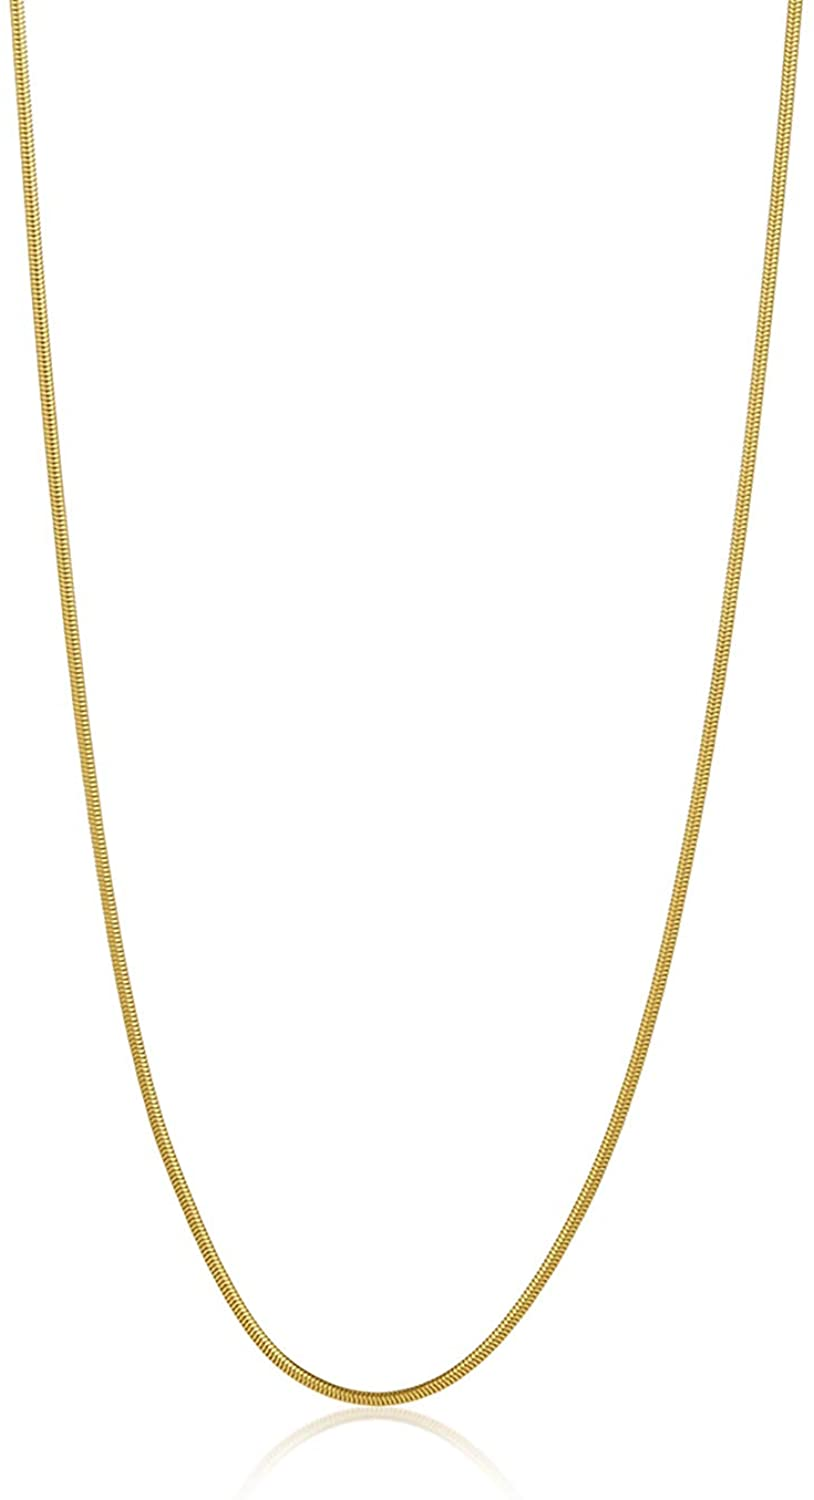 The Bling Factory 1.9mm High-Polished 0.16 mils (4 microns) 24k Yellow Gold Plated Stainless Steel Round Snake Chain Necklace, 16'-30